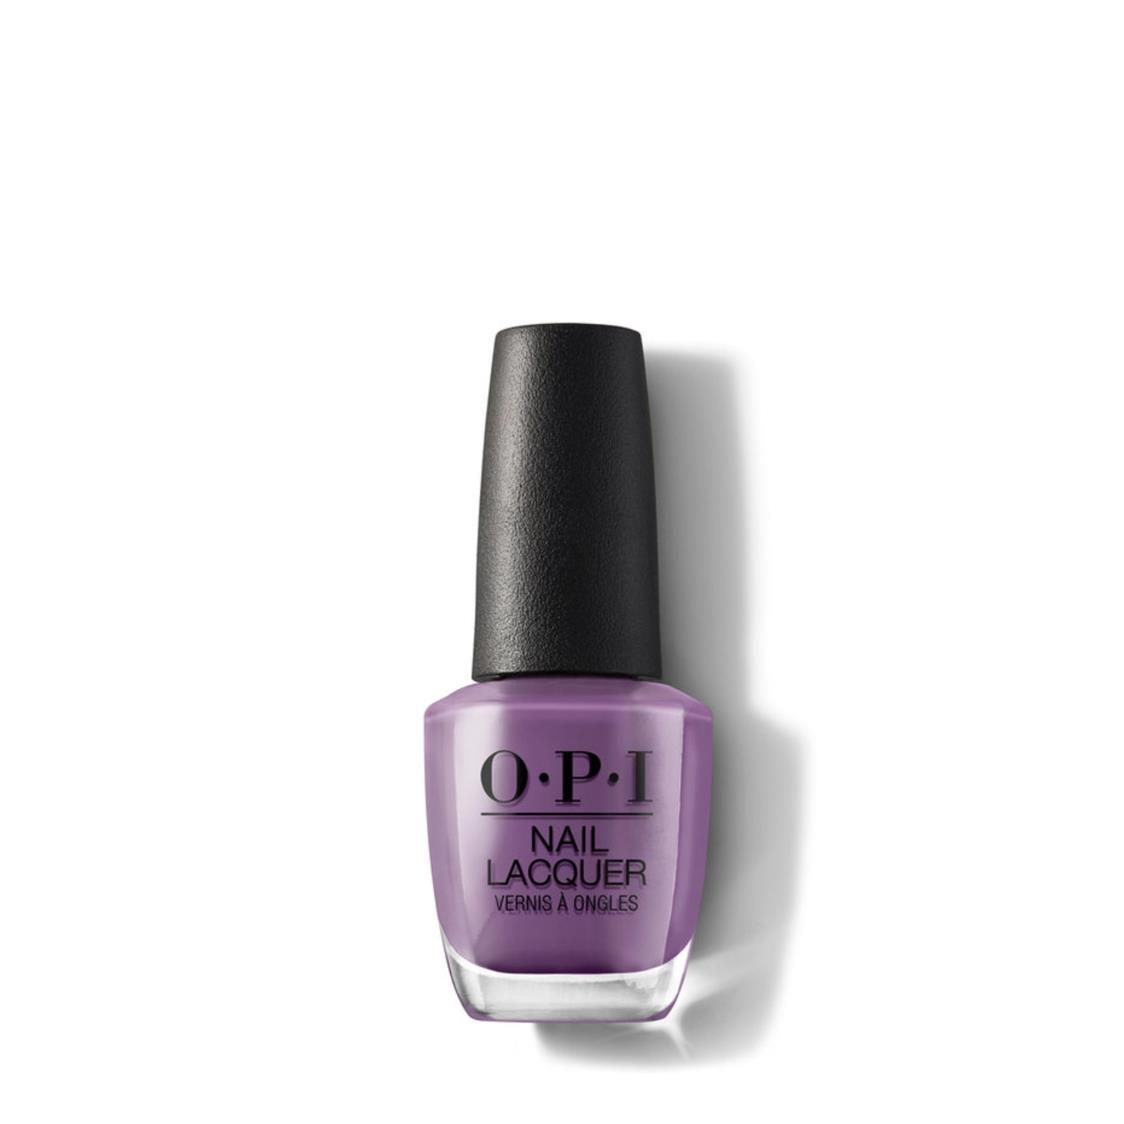 Opi Fall Collection 2018 Nail Lacquer Grandma Kissed A Gaucho 15ml